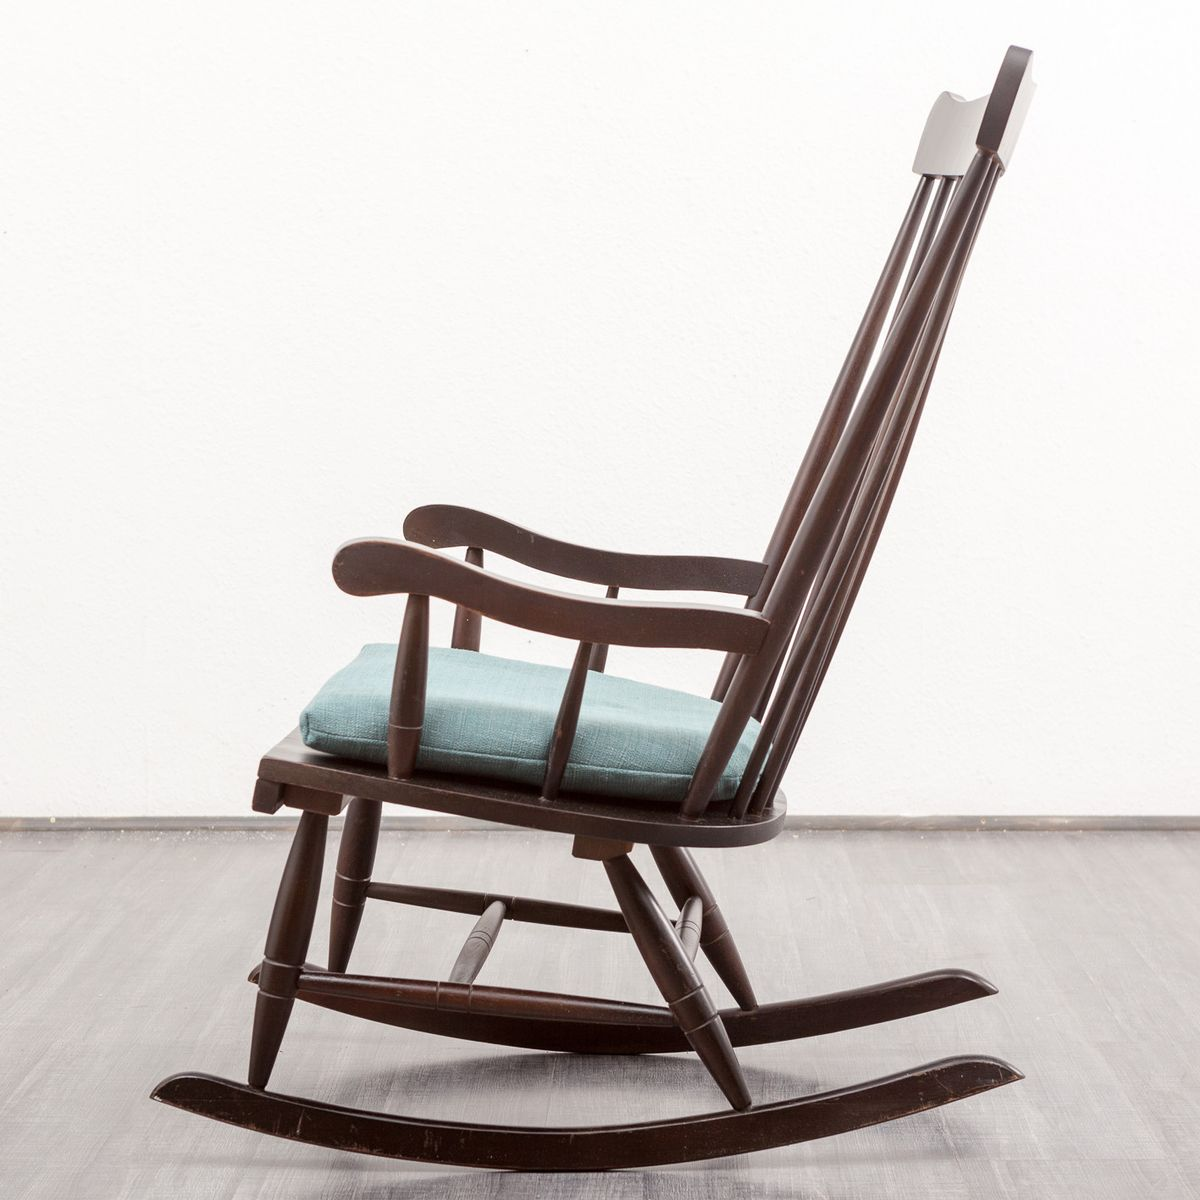 Wood Rocking Chair, 1960s for sale at Pamono